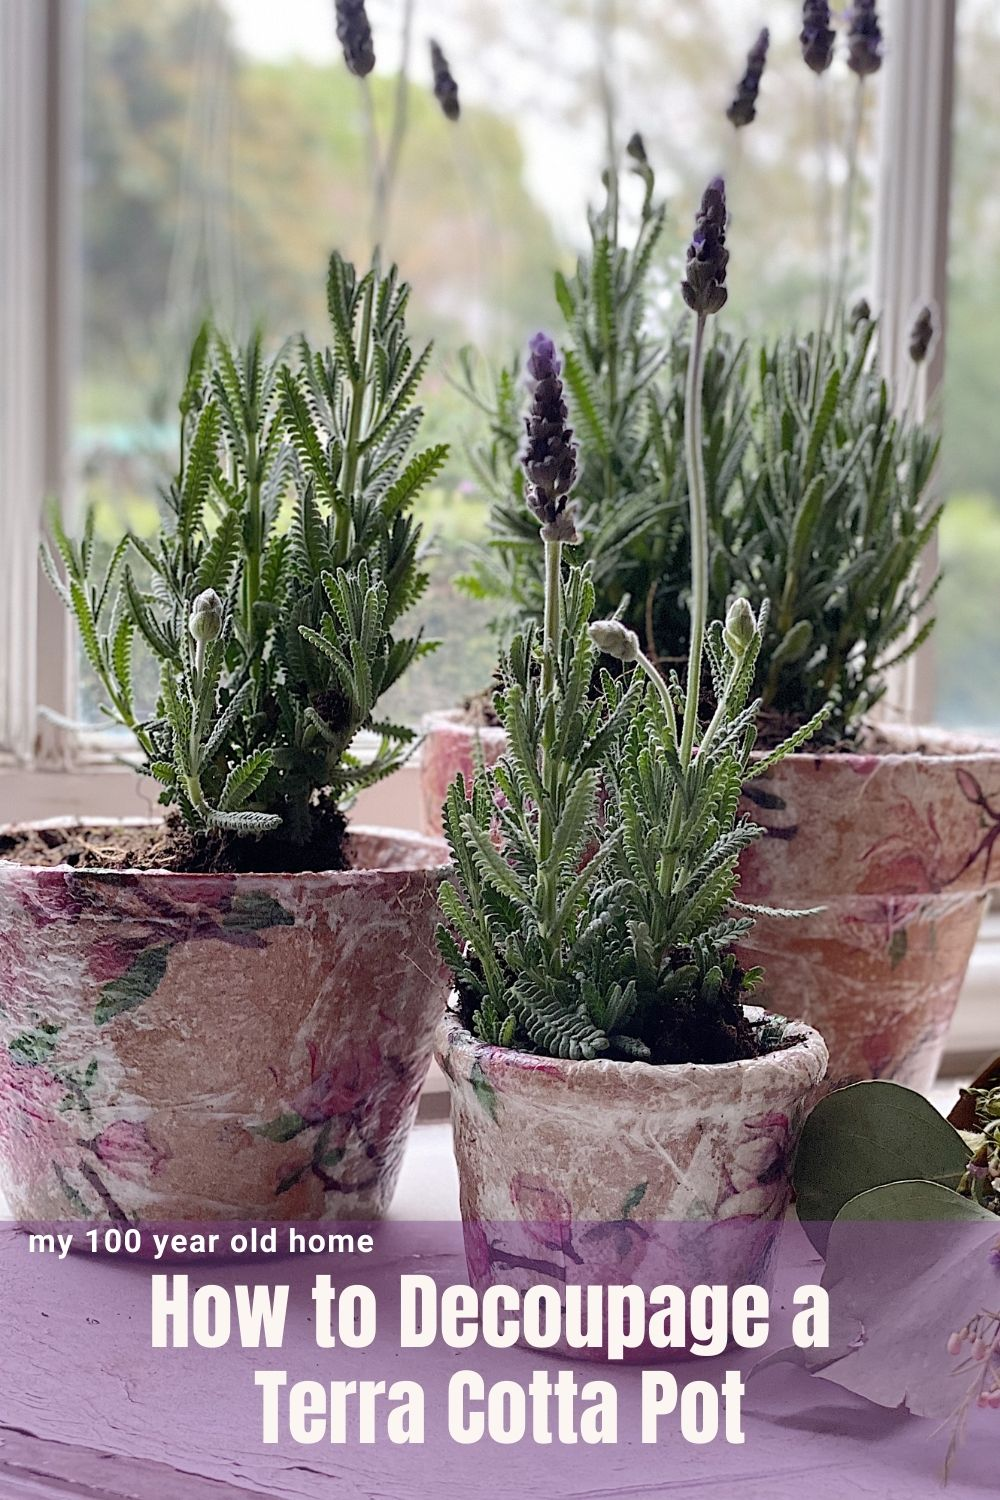 I love terra cotta pots and I thought it might be fun to try a decoupage project with some napkins. I used some old terra cotta pots and made these adorable pots to hold some fresh lavender.